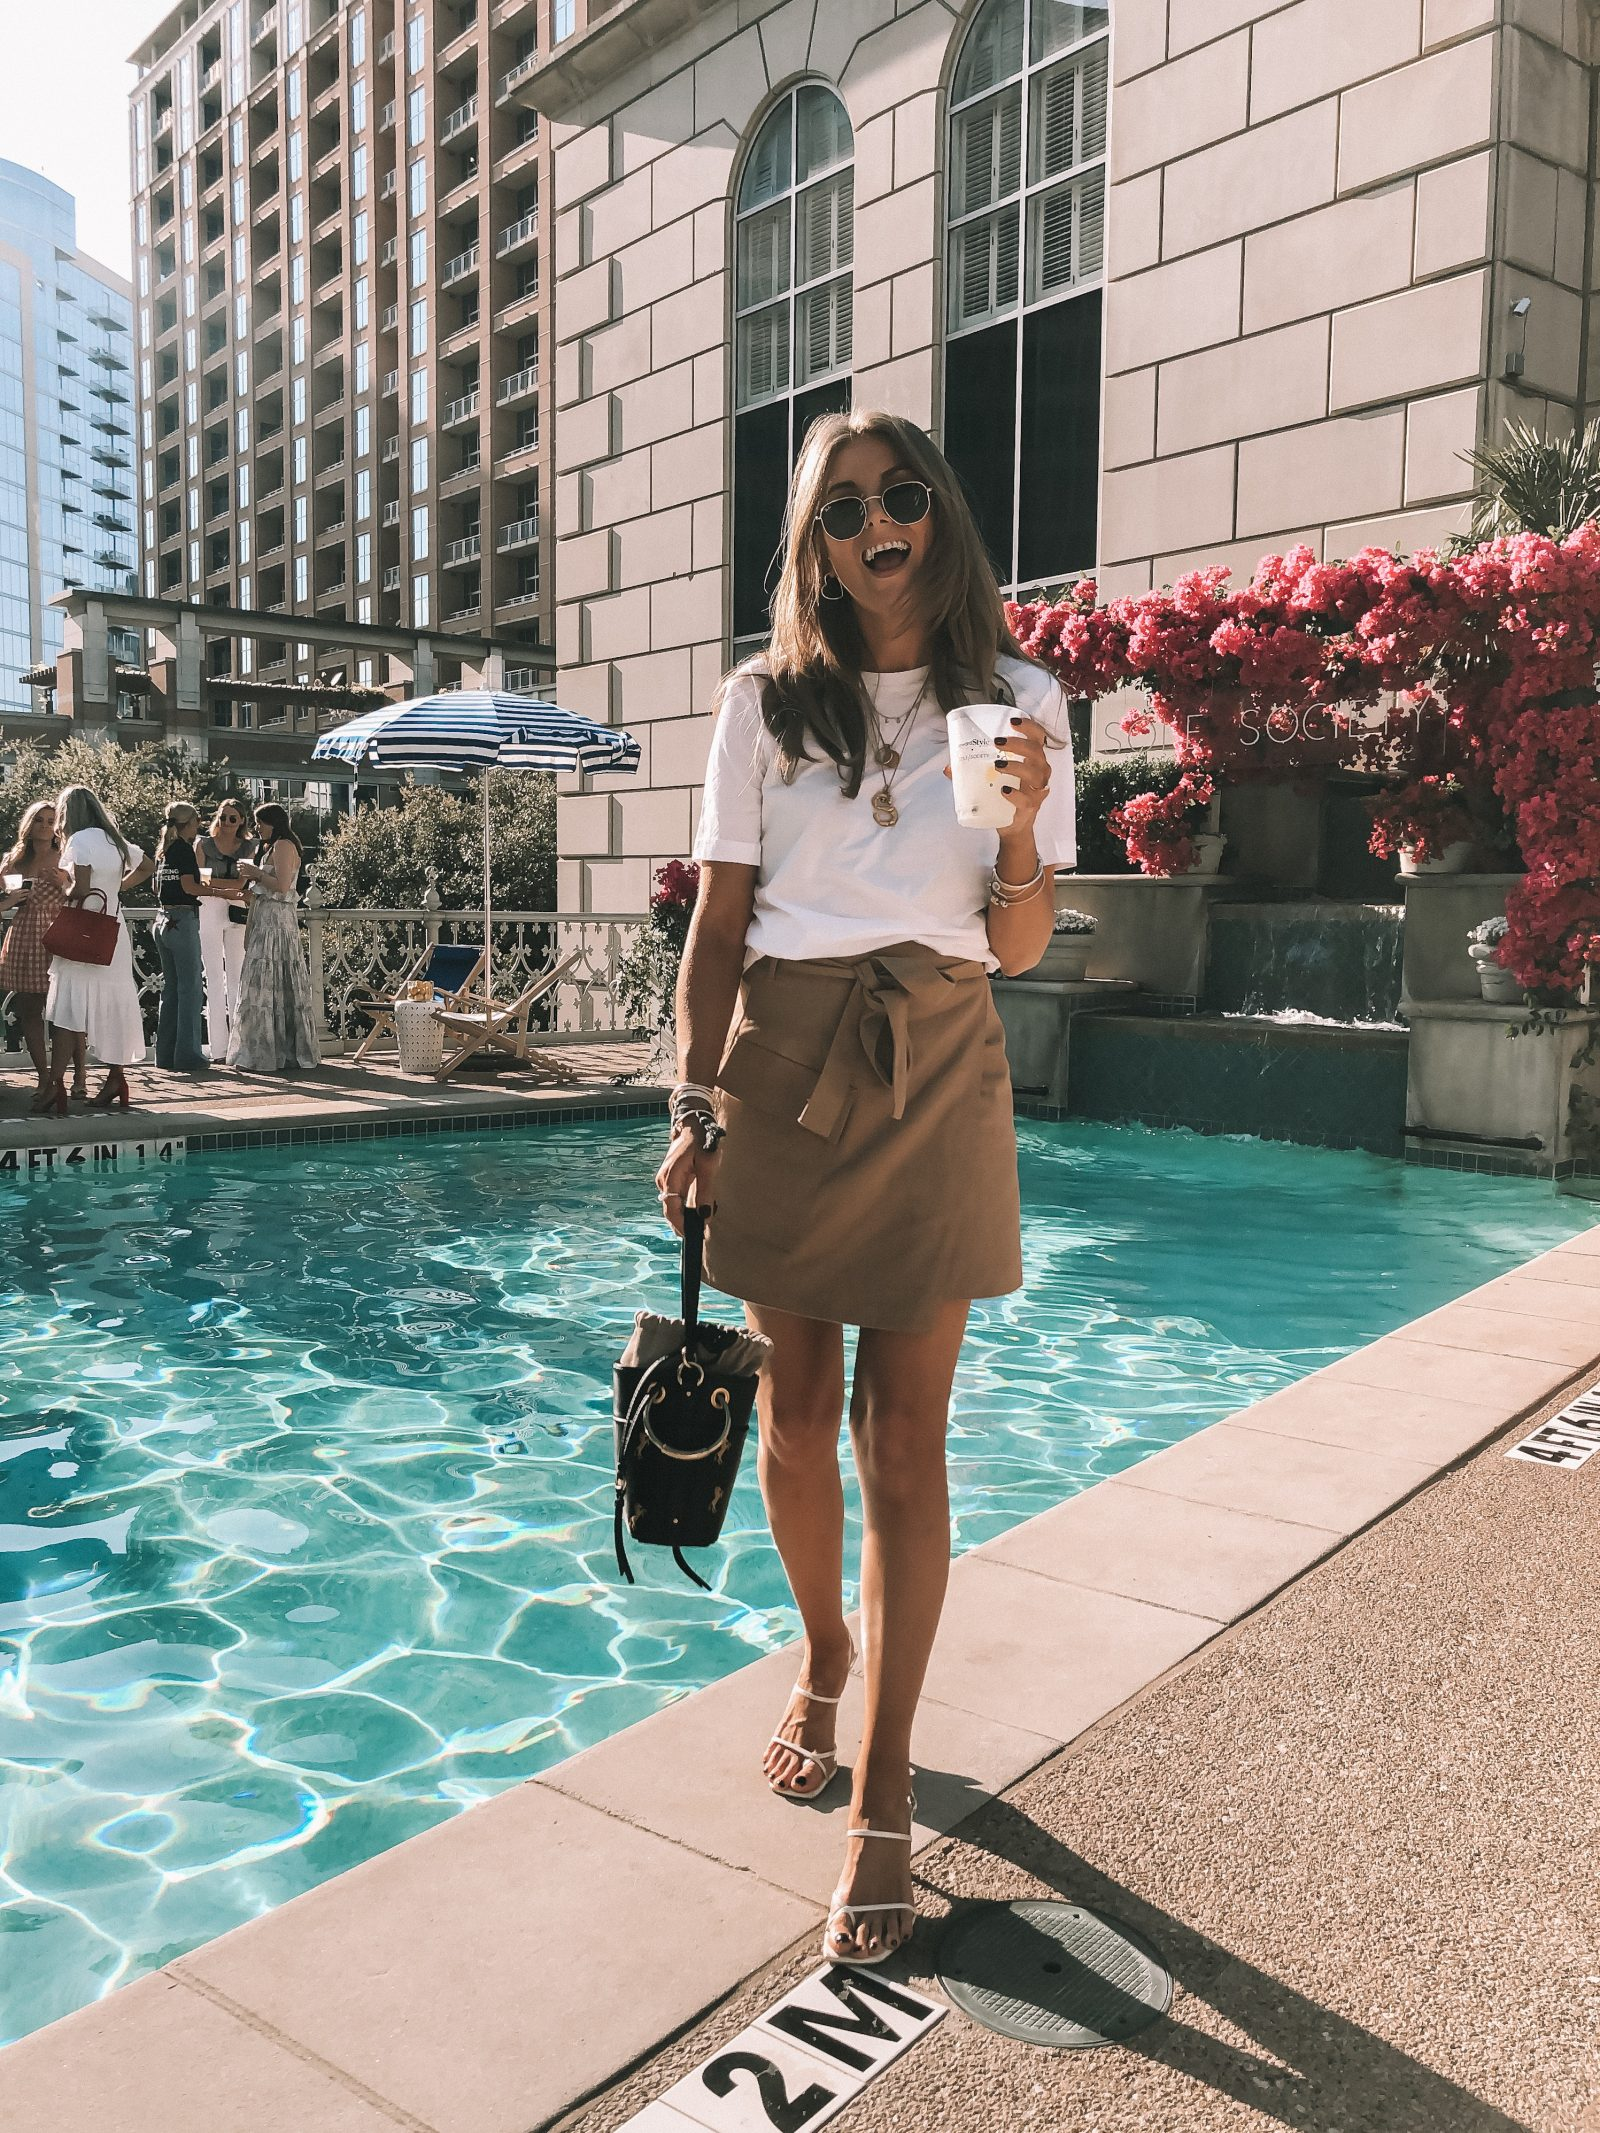 #RSTHECON evening pool party outfit. H&M utility skirt